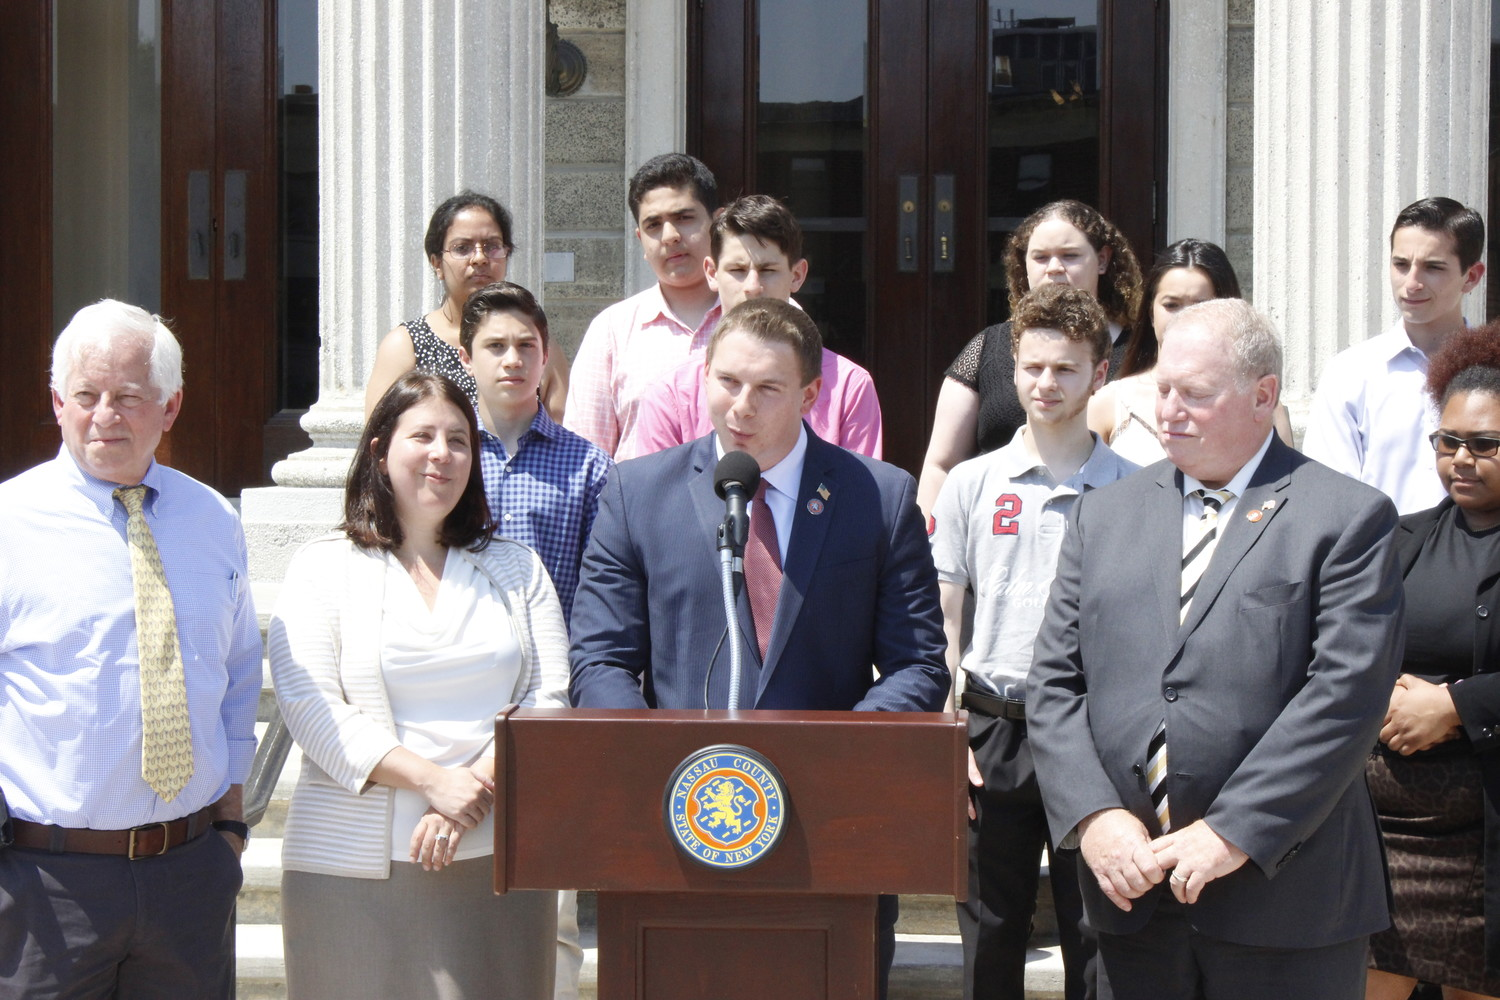 At a July 2 news conference at the offices of the Nassau County Legislature, a newly formed group of lawmakers called Nassau Unity announced their plans to combat the separation of families at the U.S. border.